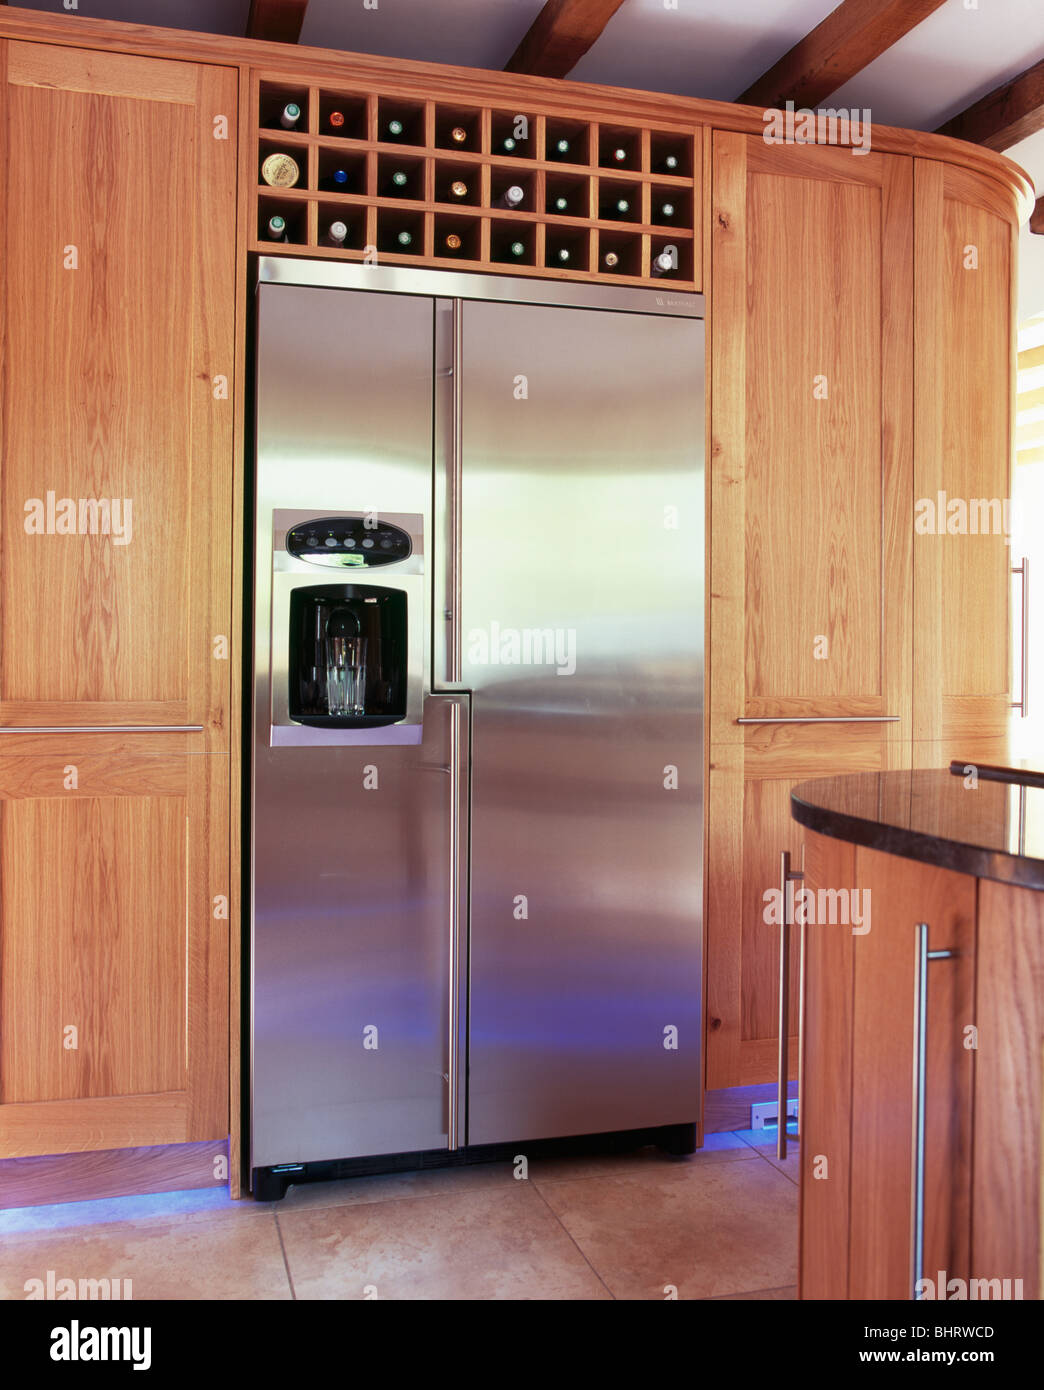 Large American Style Stainless Steel Fridge Freezer In Fitted Storage Unit  With Integral Wine Rack In Modern Kitchen